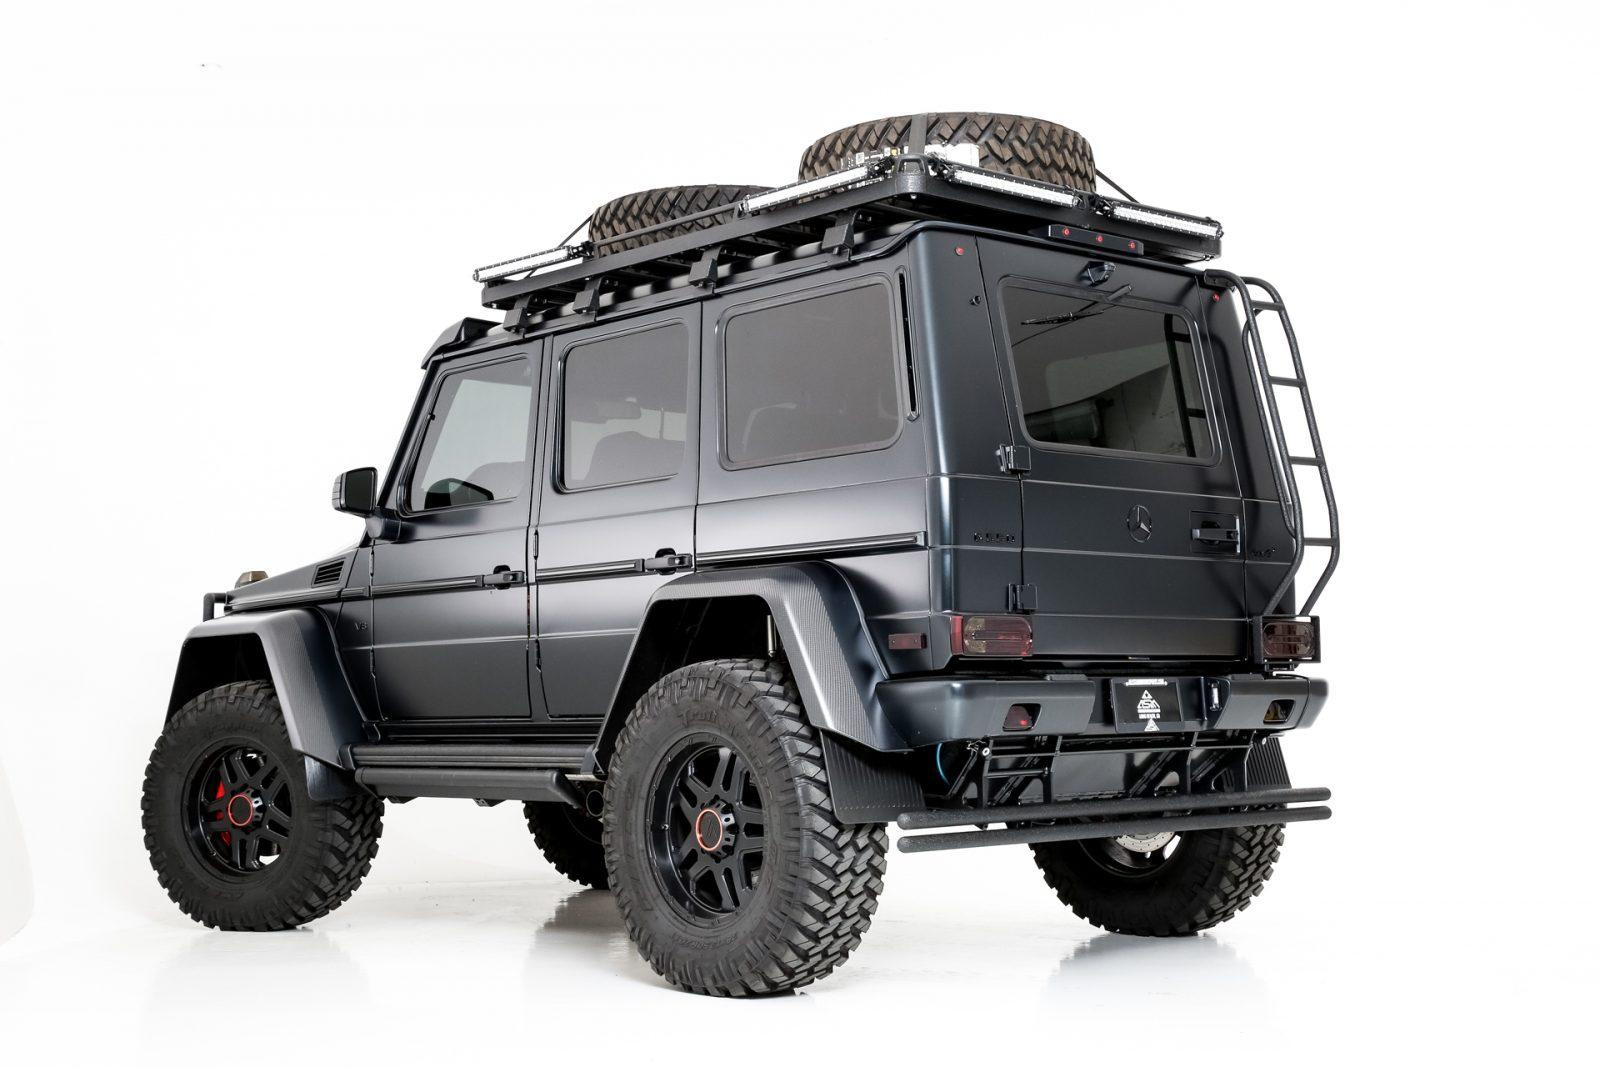 Mercedes Benz G-Wagon Blackout Package by All Star Motorsports